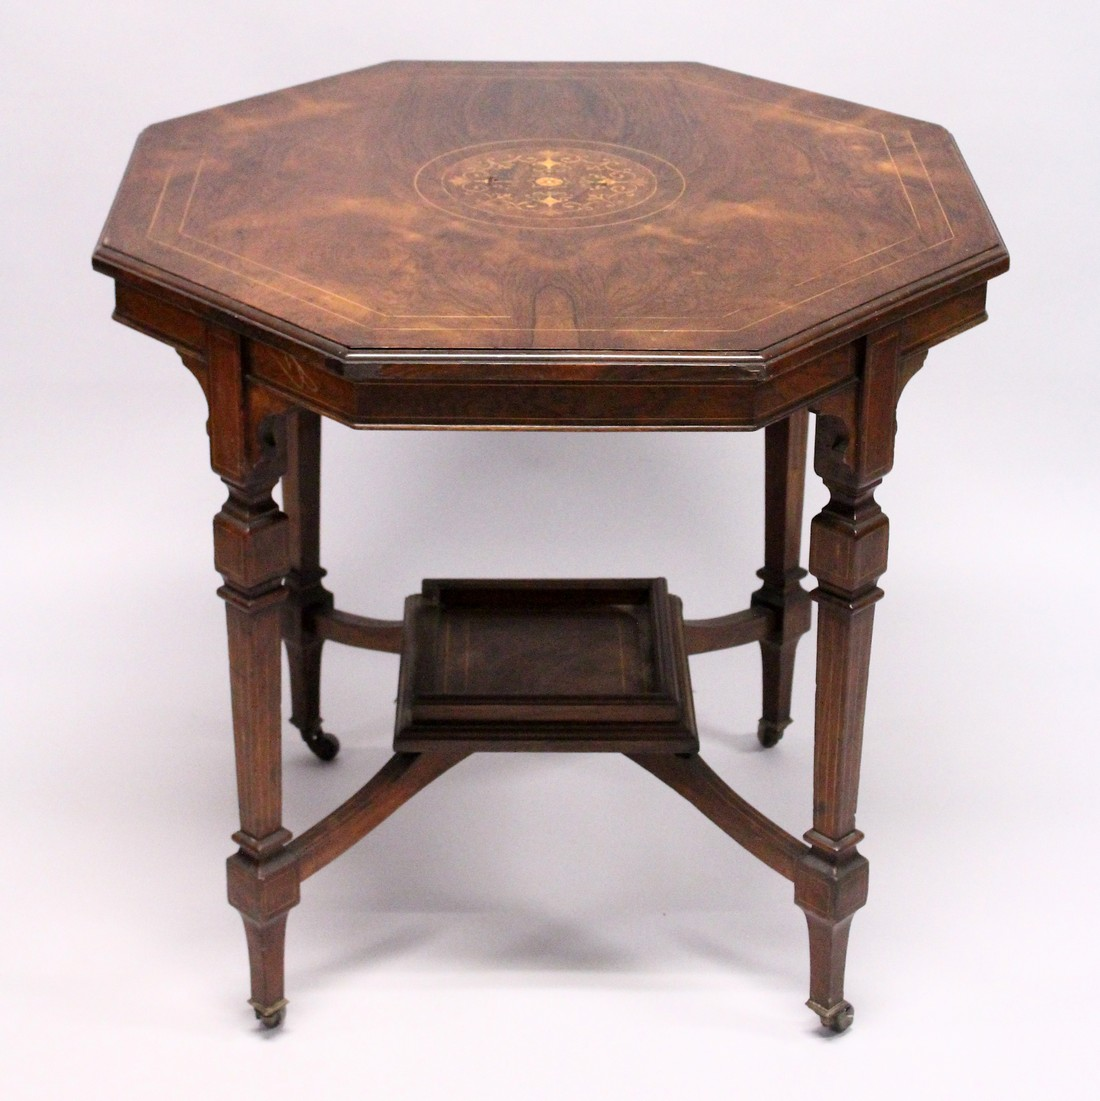 A GOOD VICTORIAN ROSEWOOD OCTAGONAL CENTRE TABLE with inlaid top, tapering legs with casters and